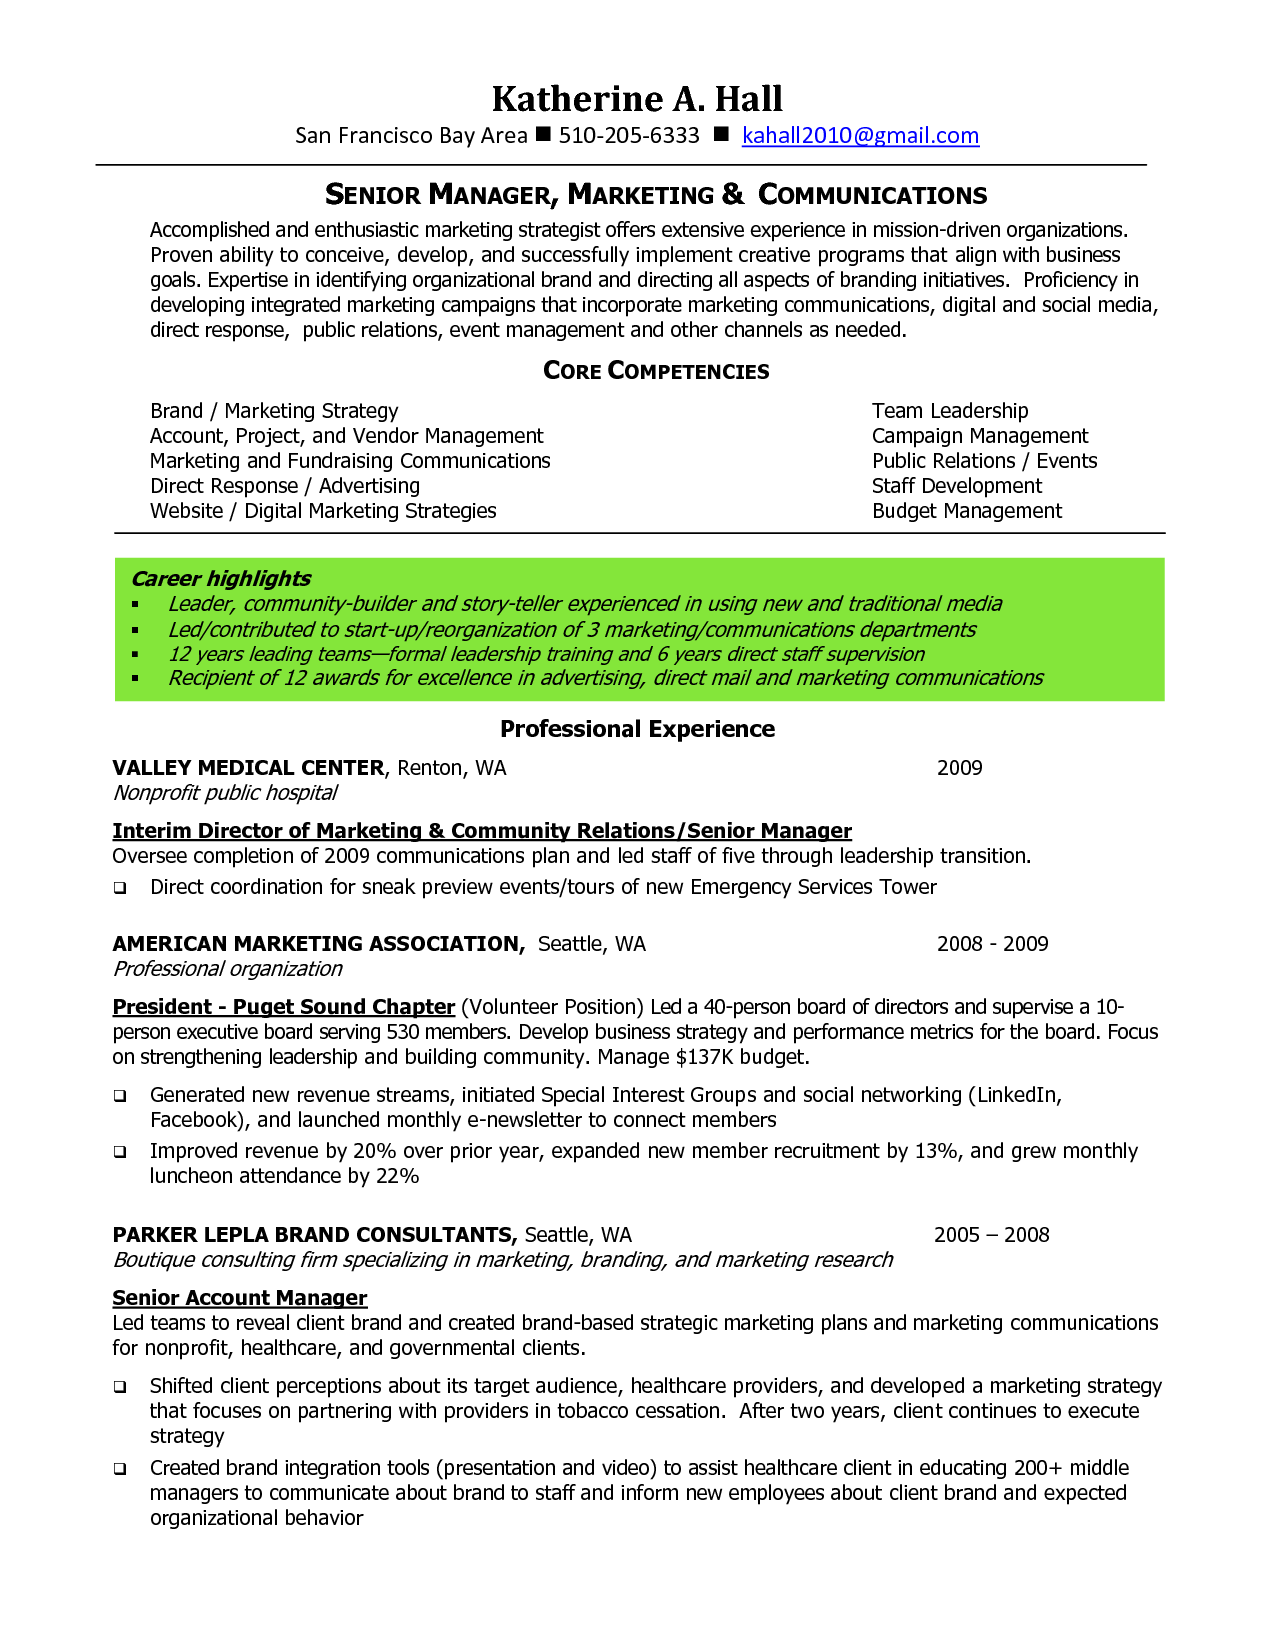 sample resume for marketing program manager marketing director sample resume for marketing program manager marketing director sample resume marketing manager resume objective